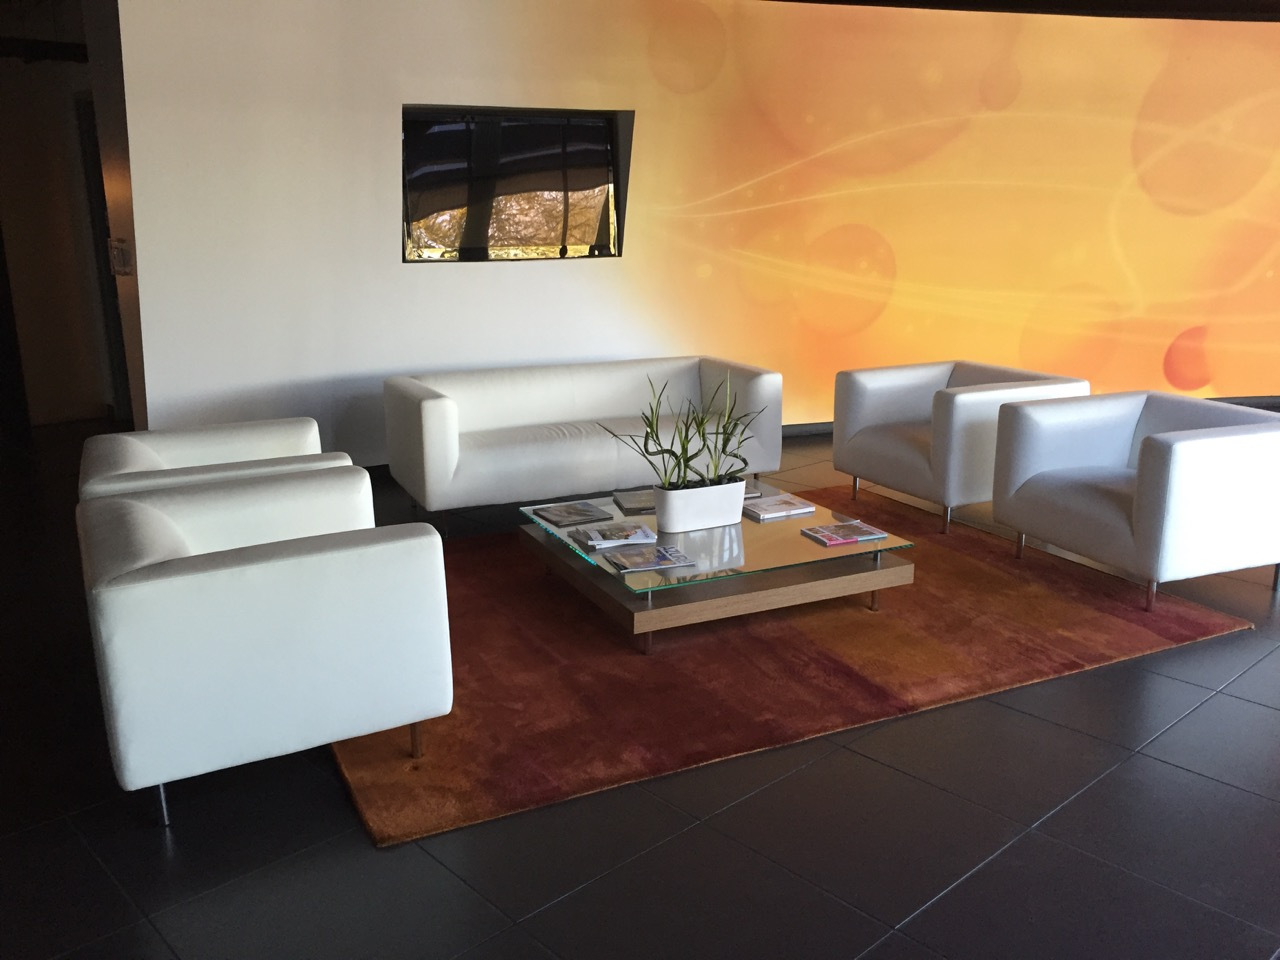 auction offers deals from major office furnishings store